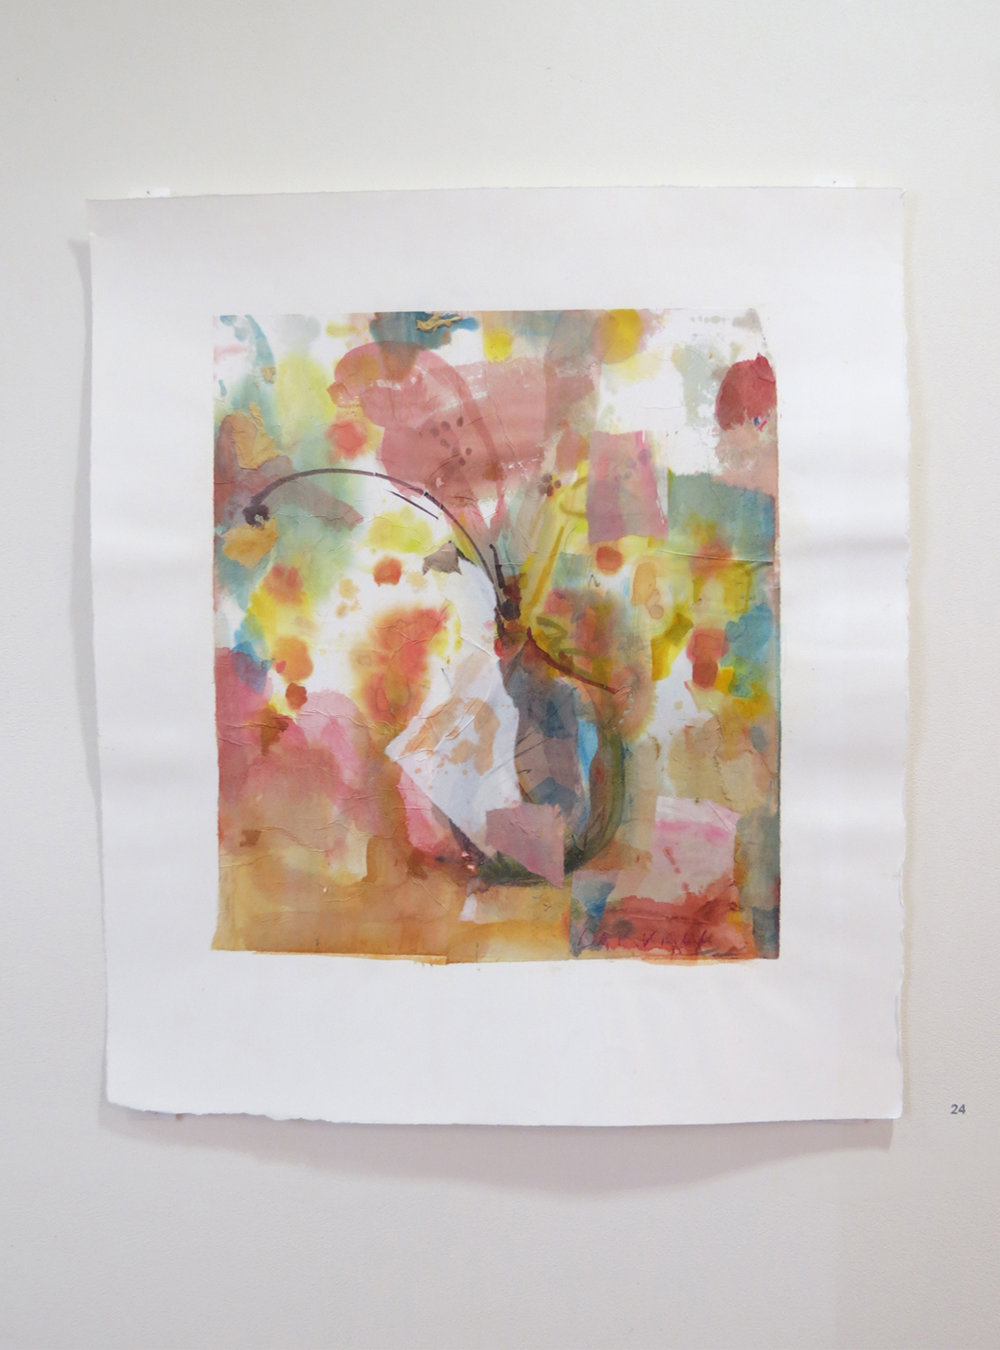 24. Jo Darvall, 'Floating Water Work 9', 2015, Watercolour on rice paper, 67 x 58cm, $1,800